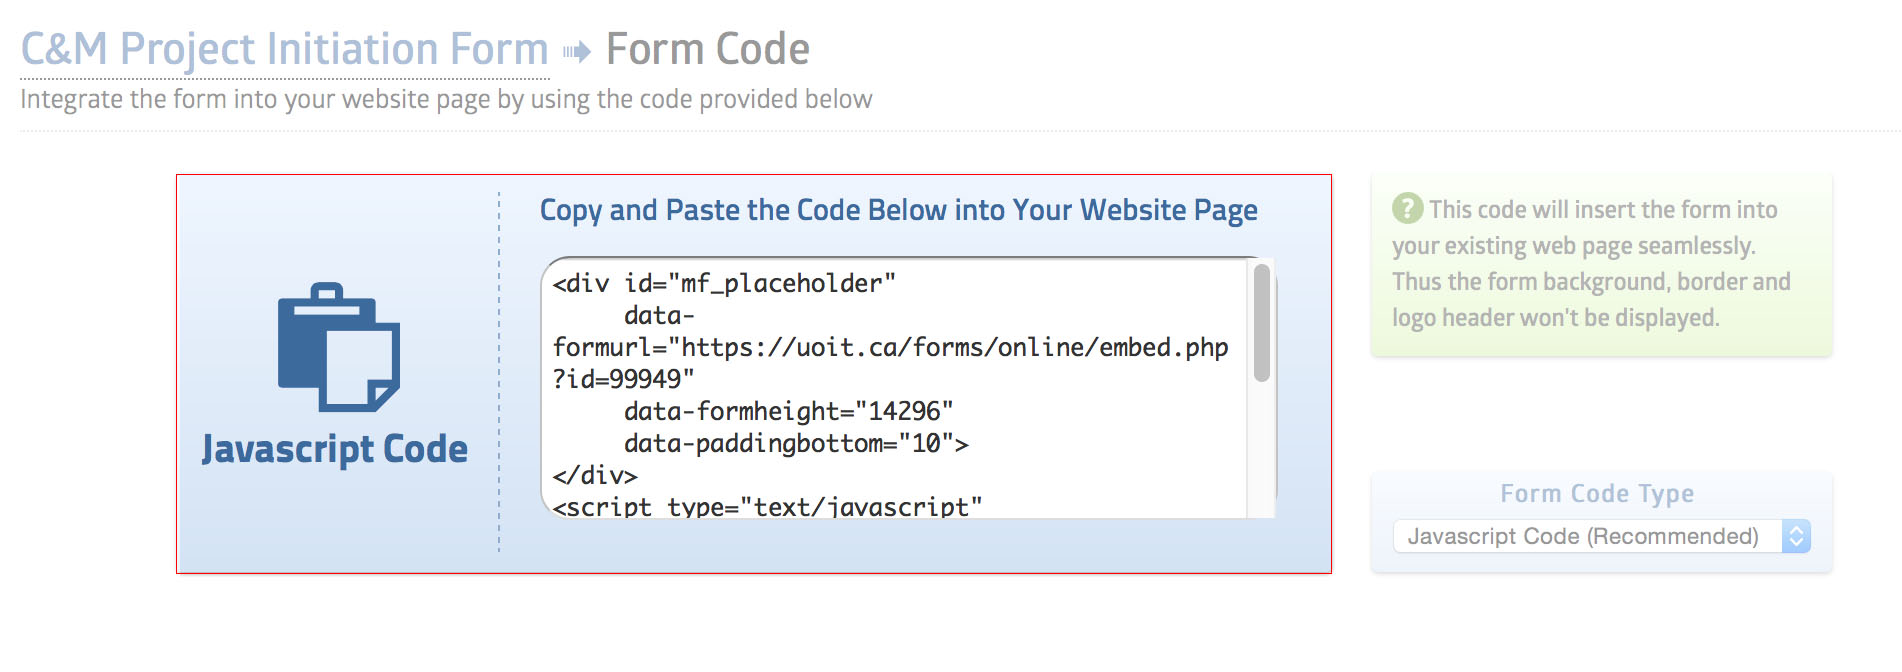 Copy Code screenshot from Machform